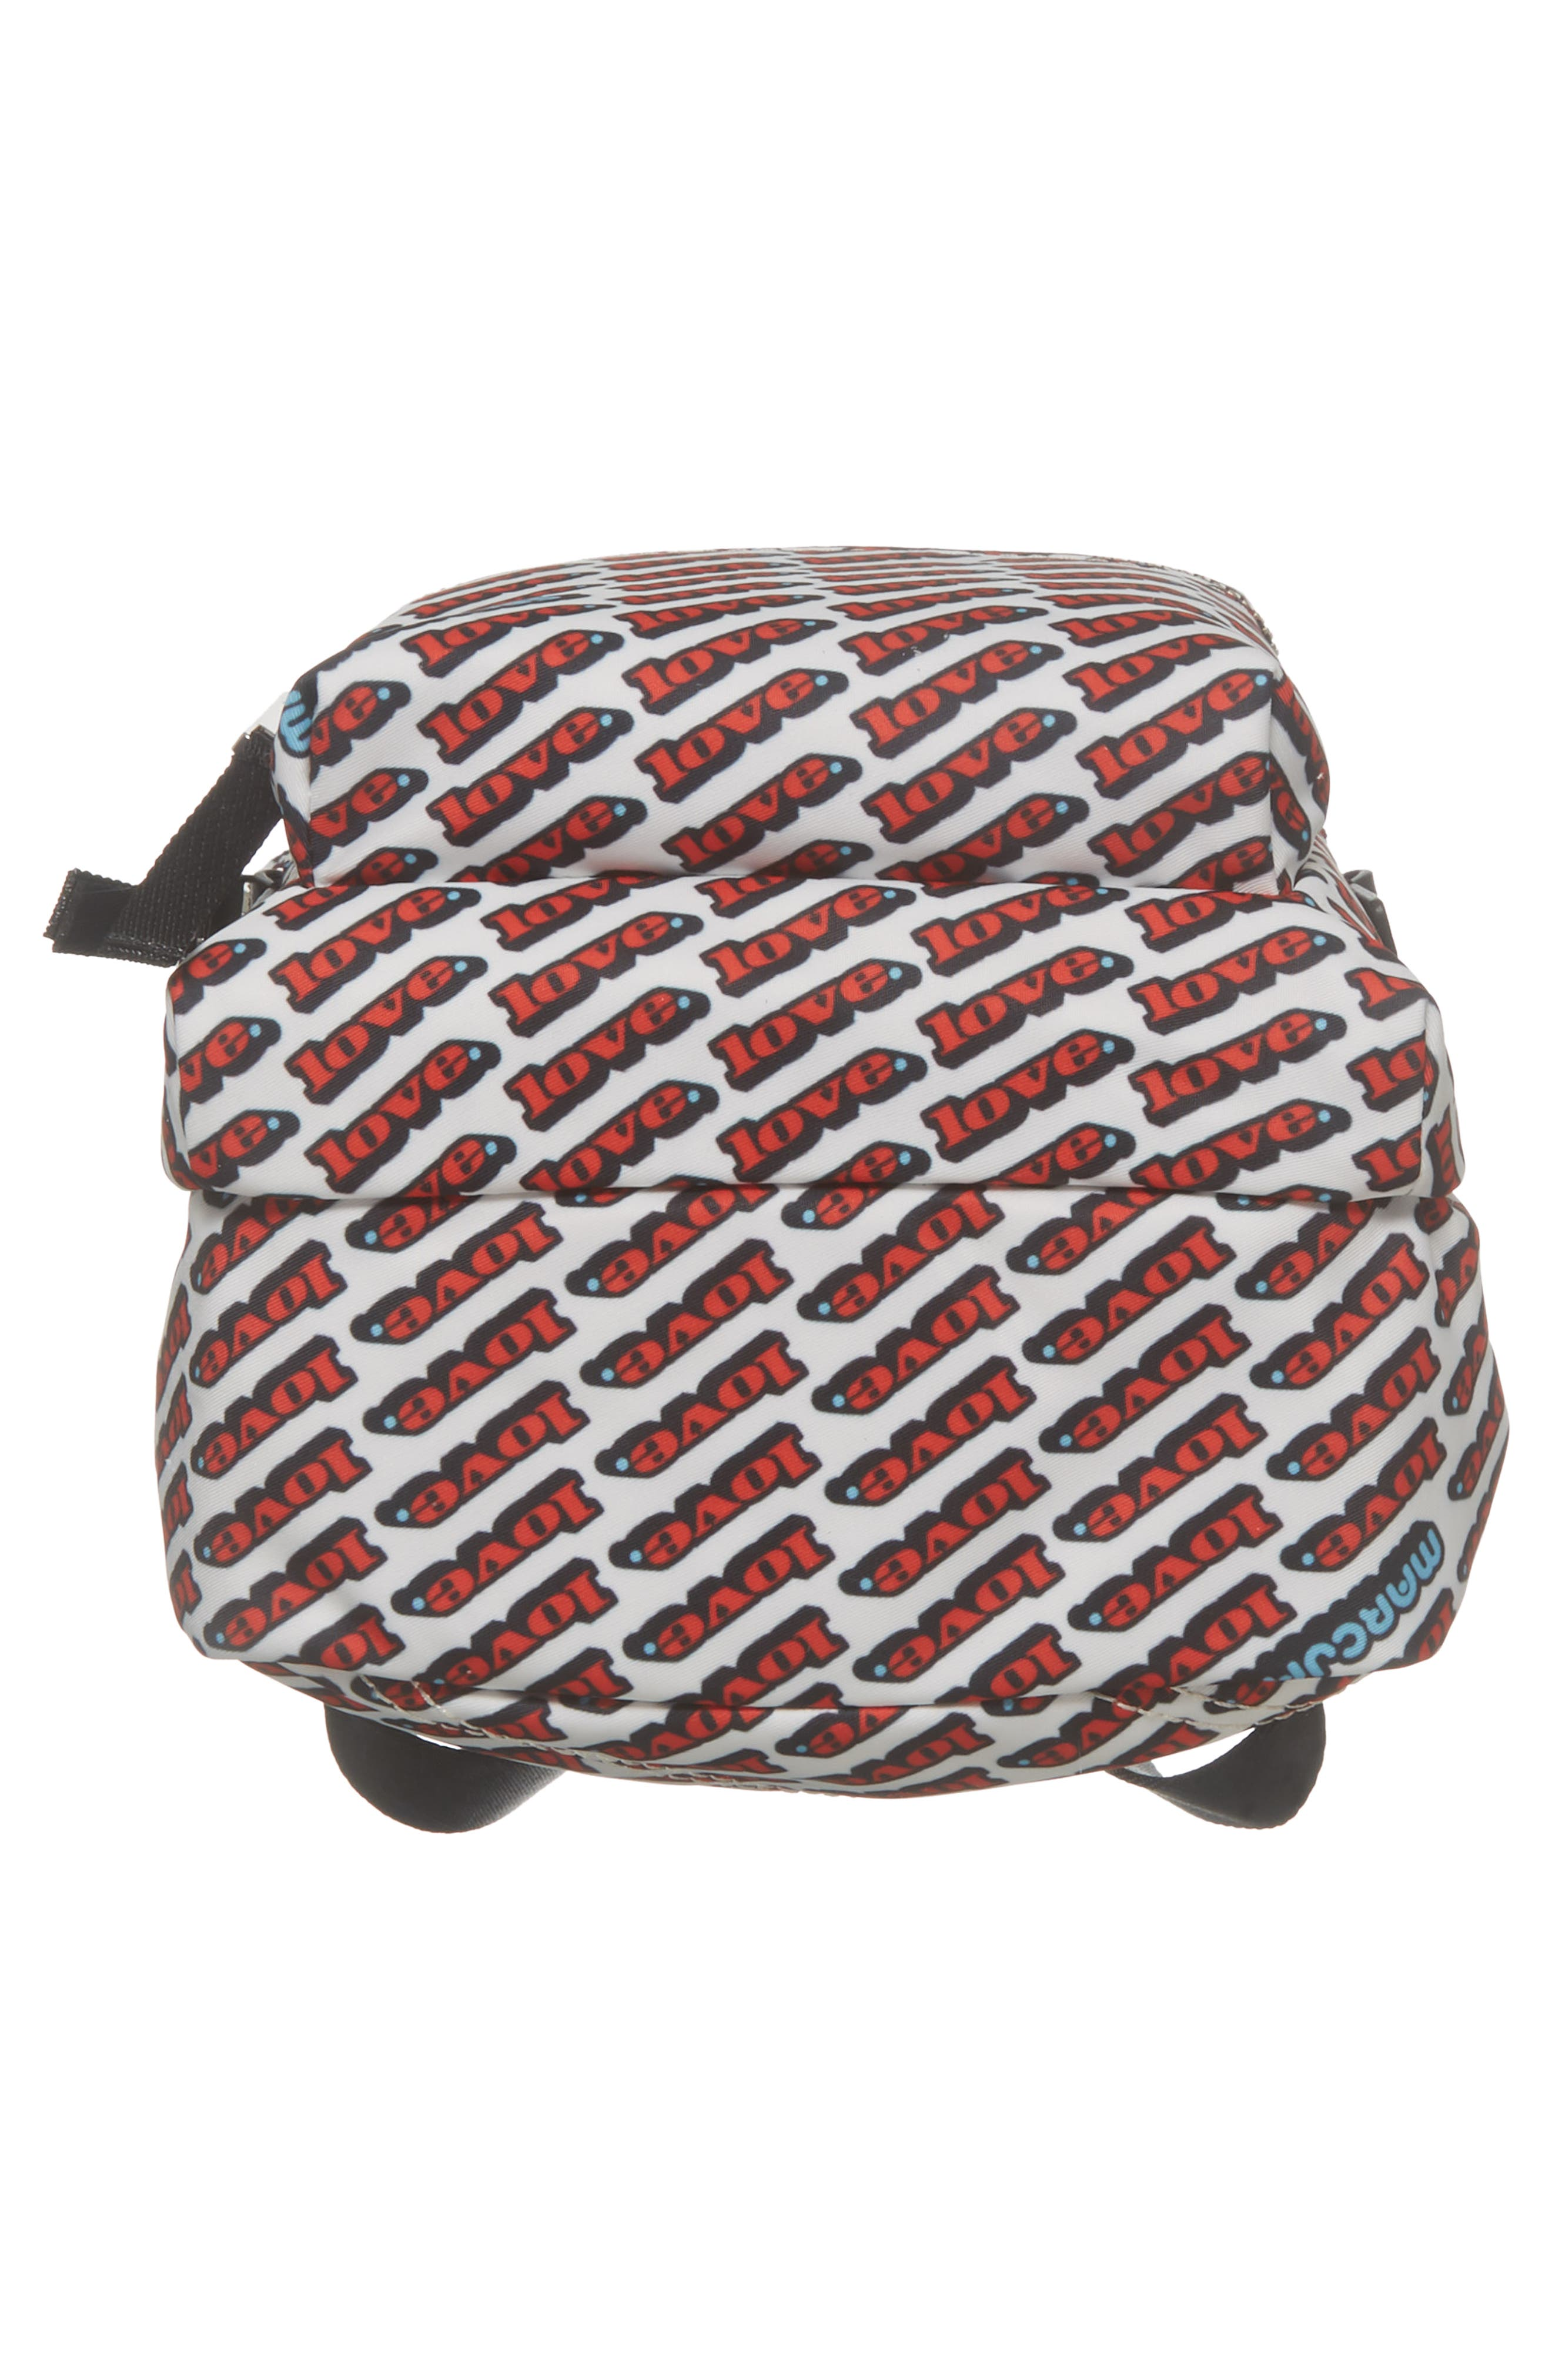 Mini Trek Love Backpack,                             Alternate thumbnail 5, color,                             Red Multi